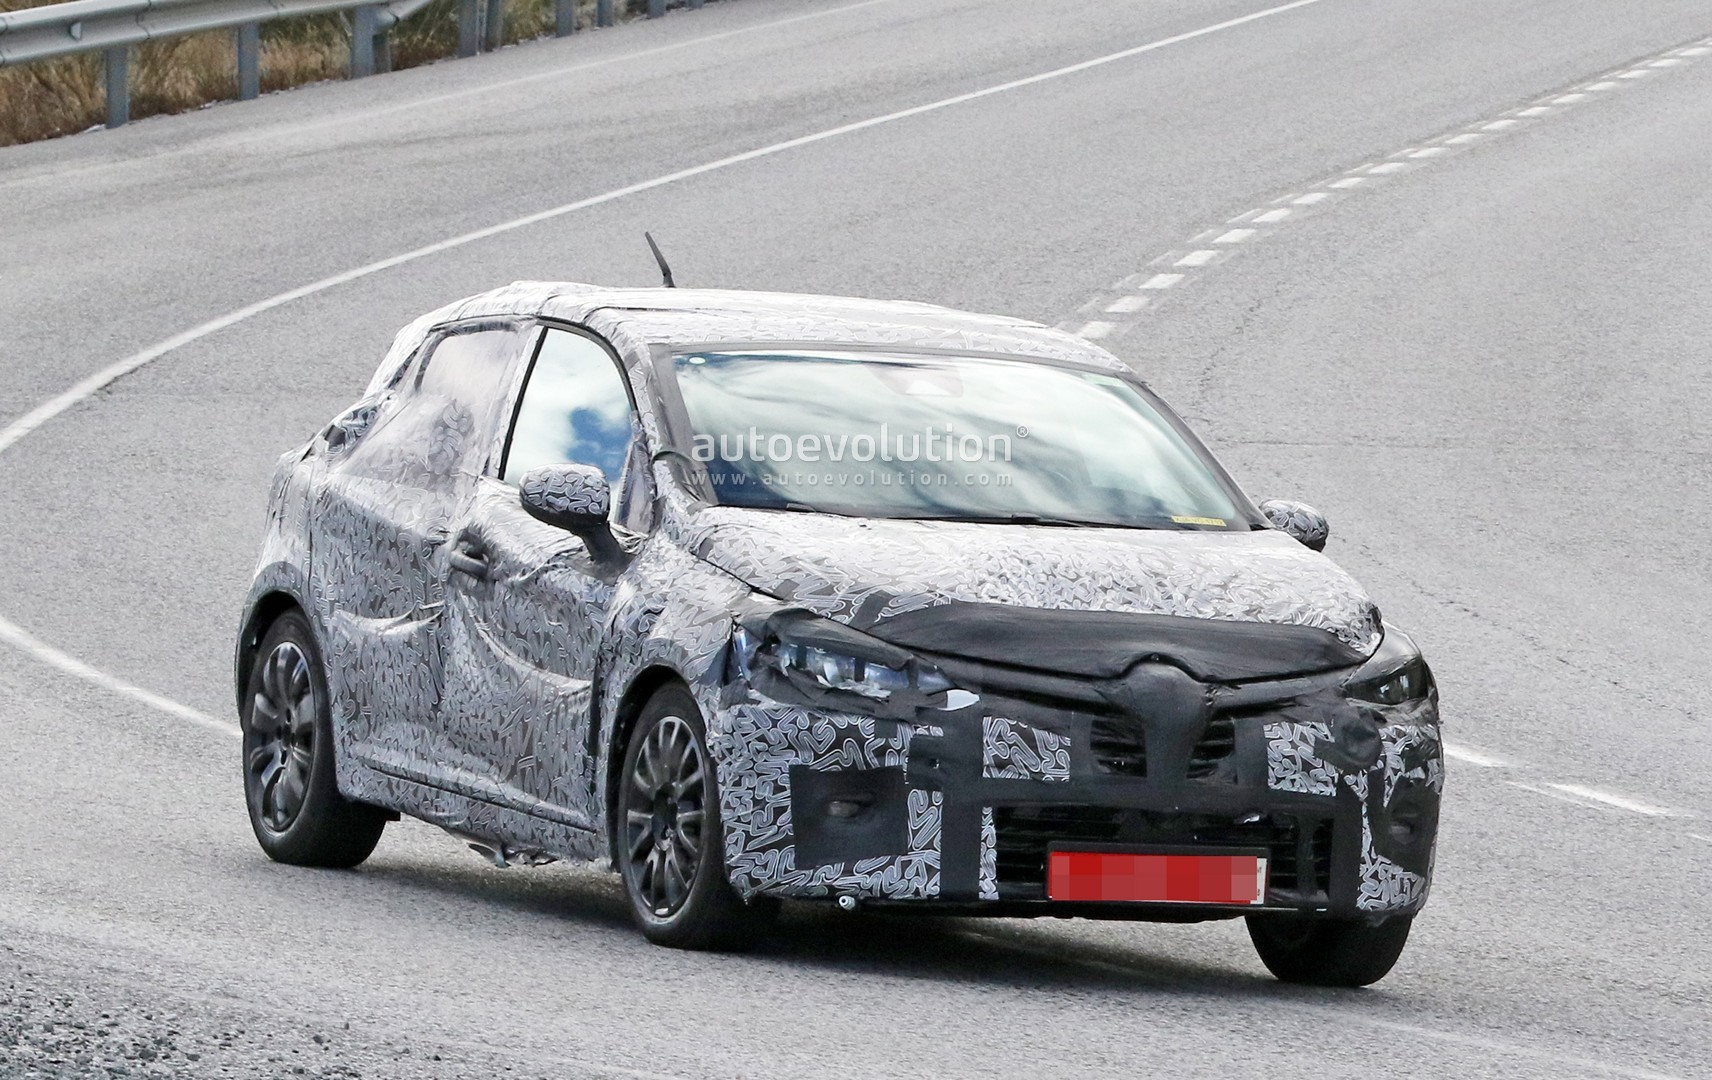 2020 Renault Clio Rs Expected To Get 1 8 Energy Tce Engine Autoevolution